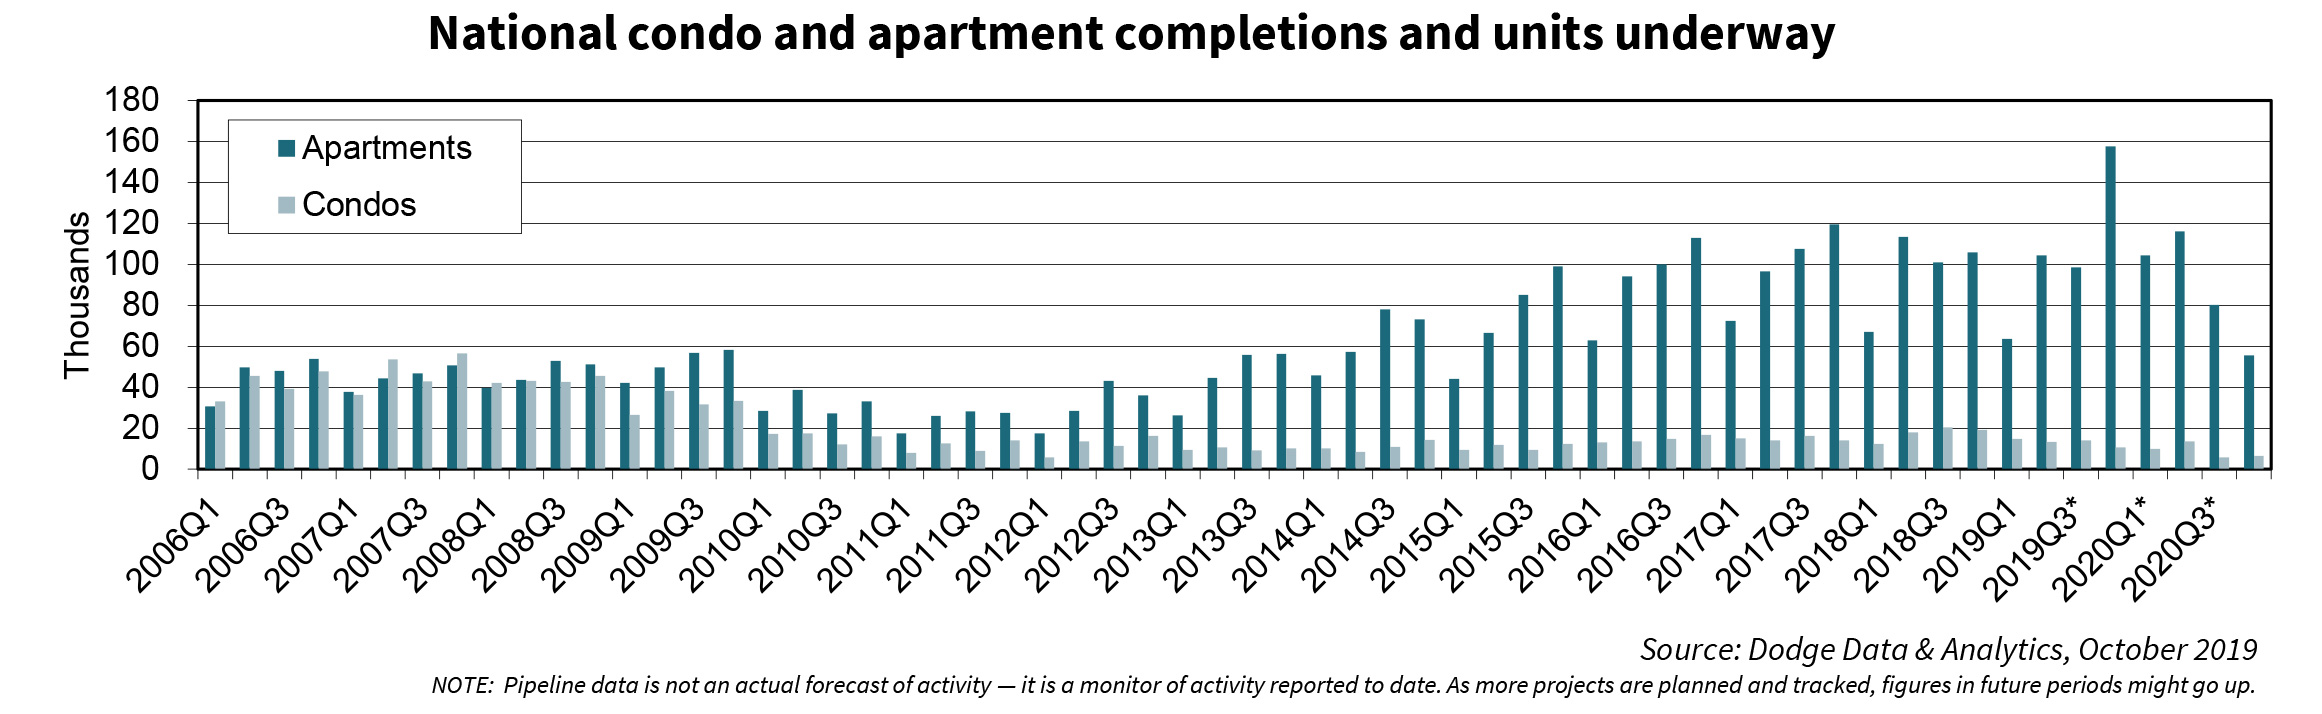 National condo and apartment completions and units underway